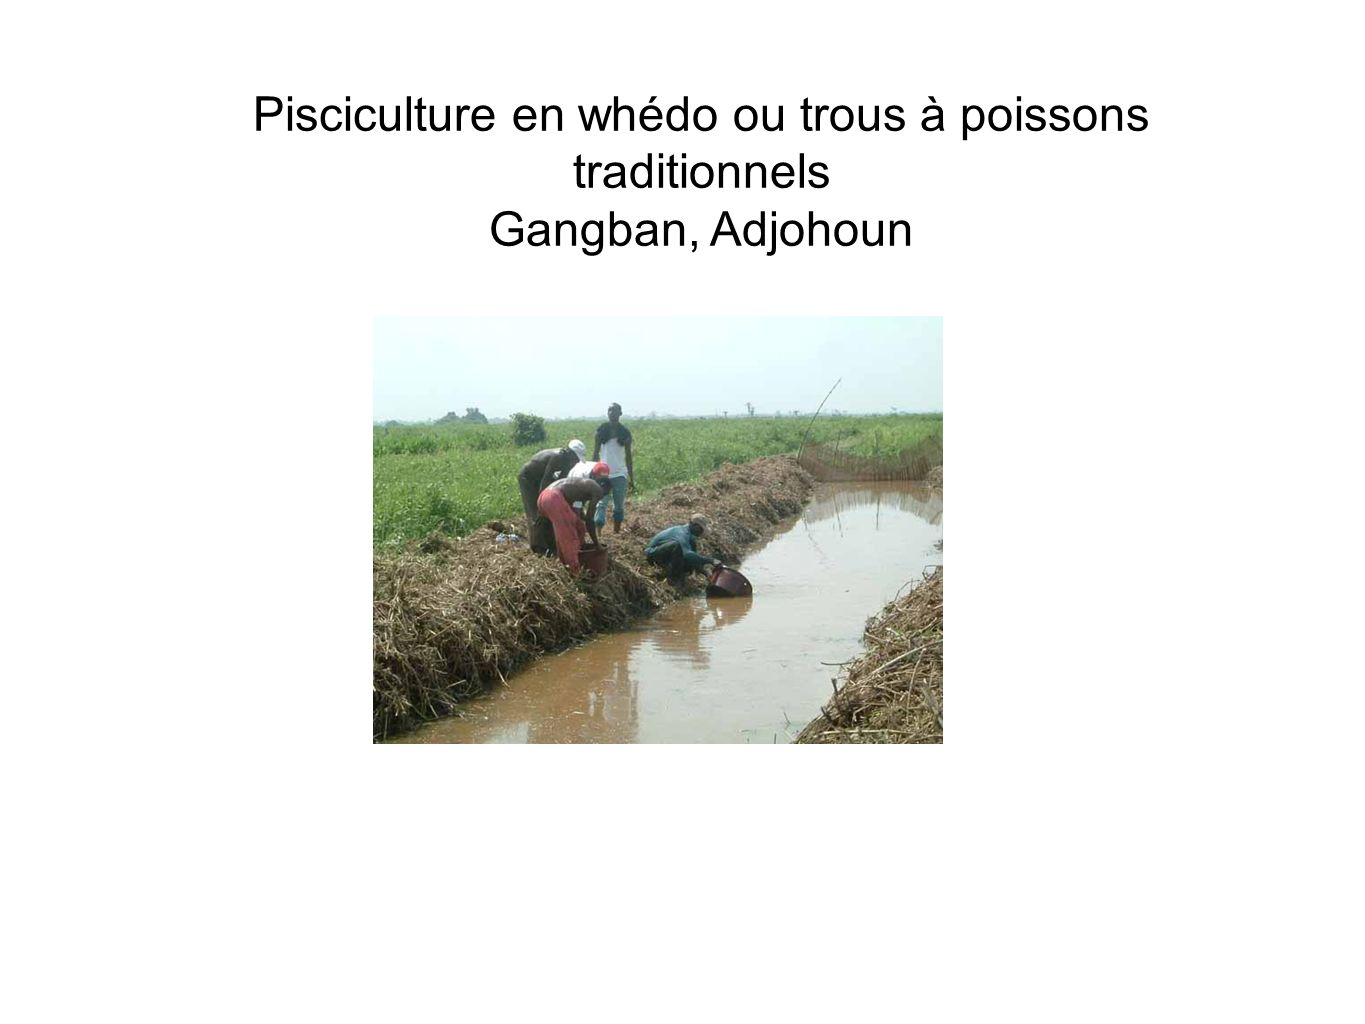 Pisciculture en whédo ou trous à poissons traditionnels